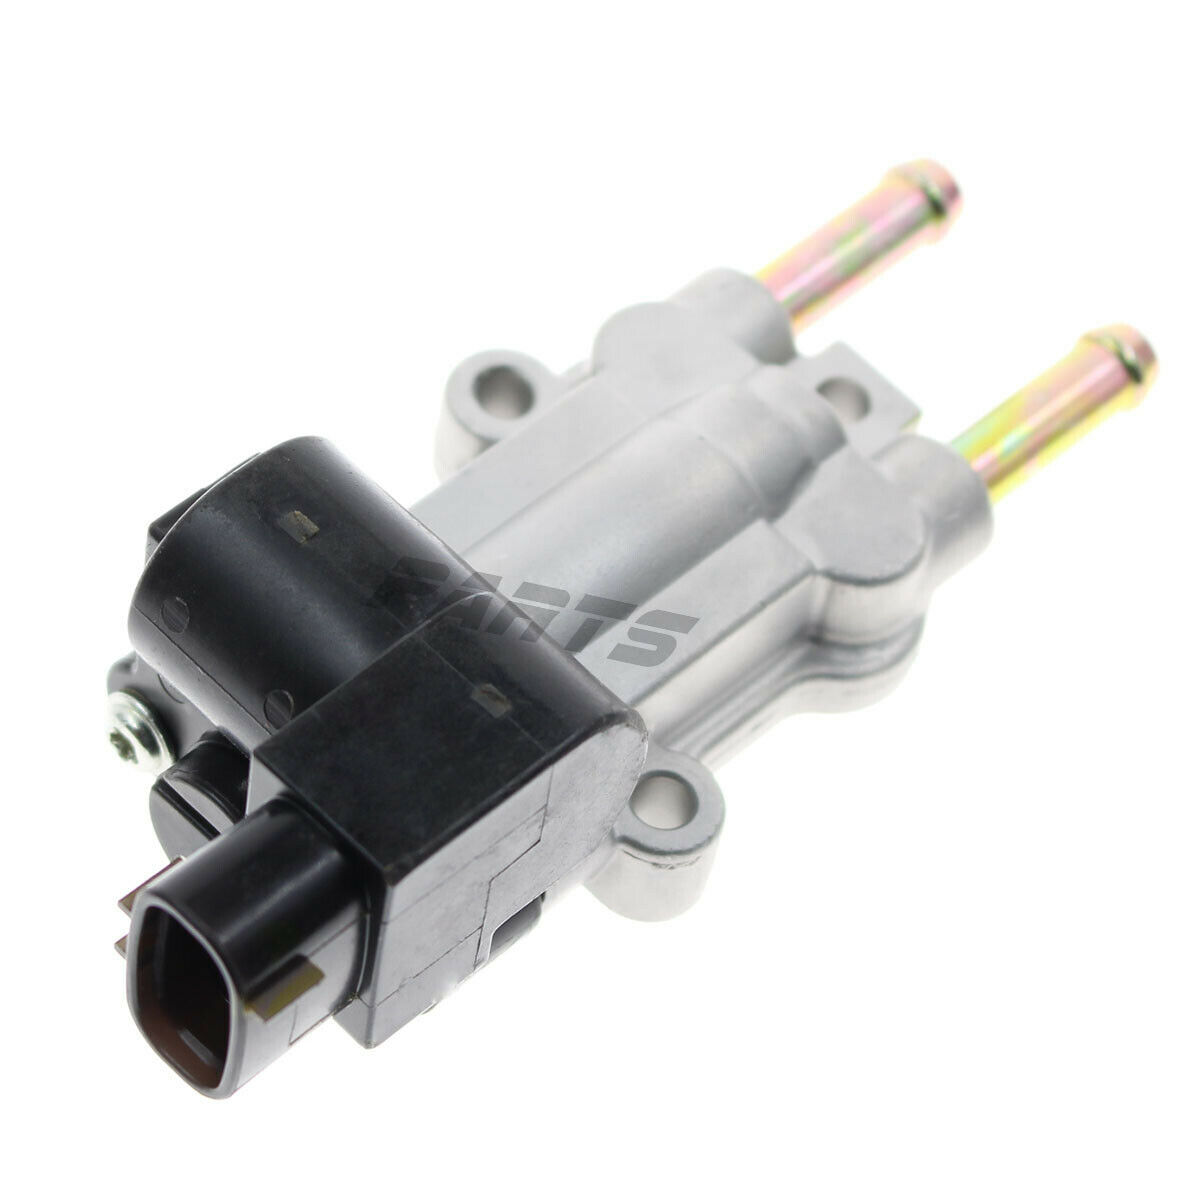 Oem Idle Air Control Valve Iac 222700d040 With Gasket For 2000 Toyota 4runner Pontiac 1 Of 6only 0 Available